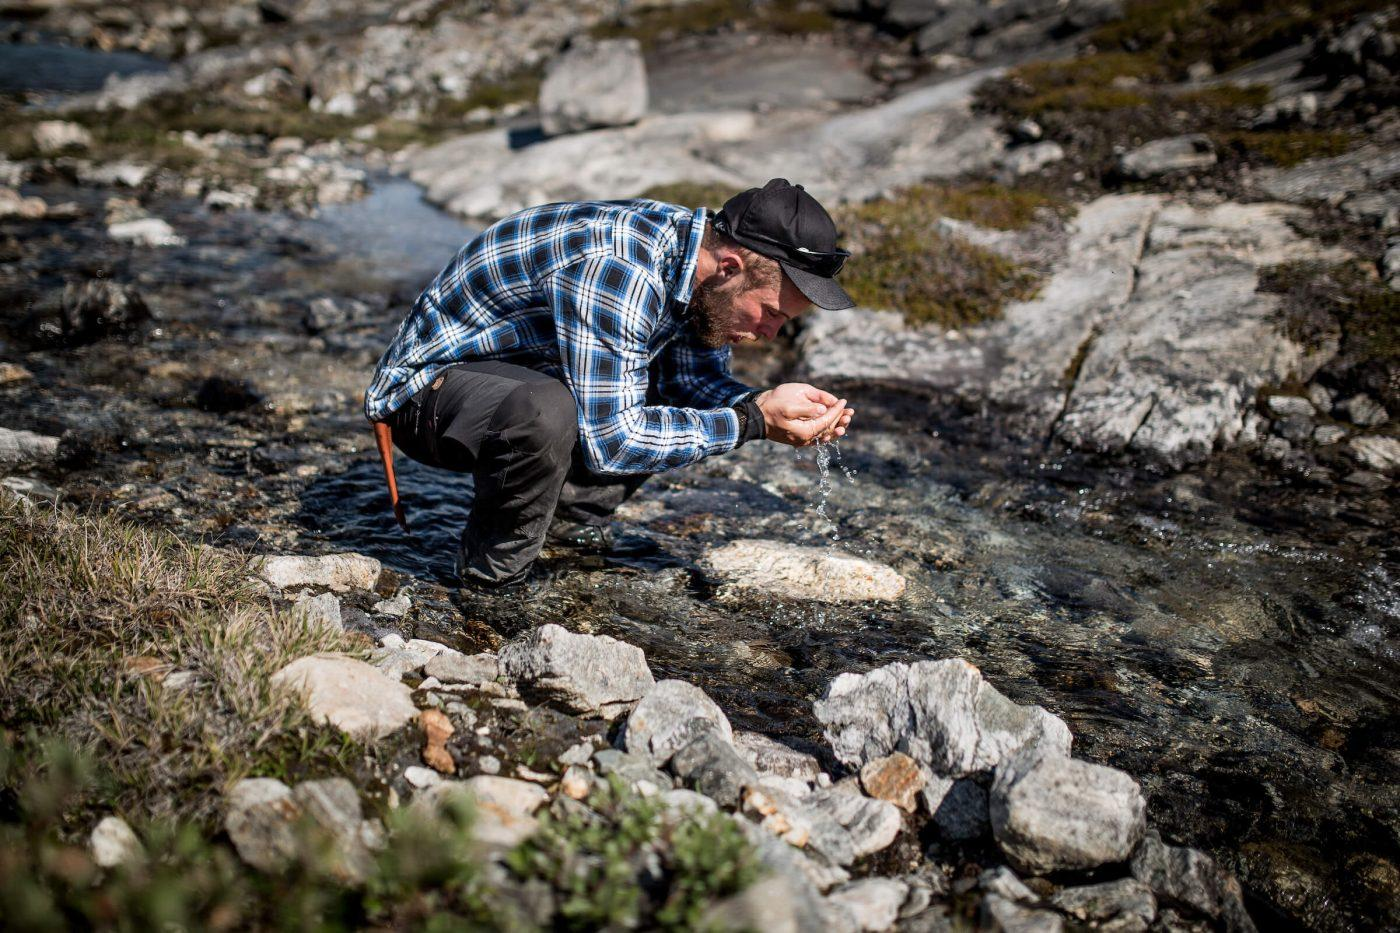 A hiker in East Greenland drinking pure, fresh water from a stream. Photo by Mads Pihl